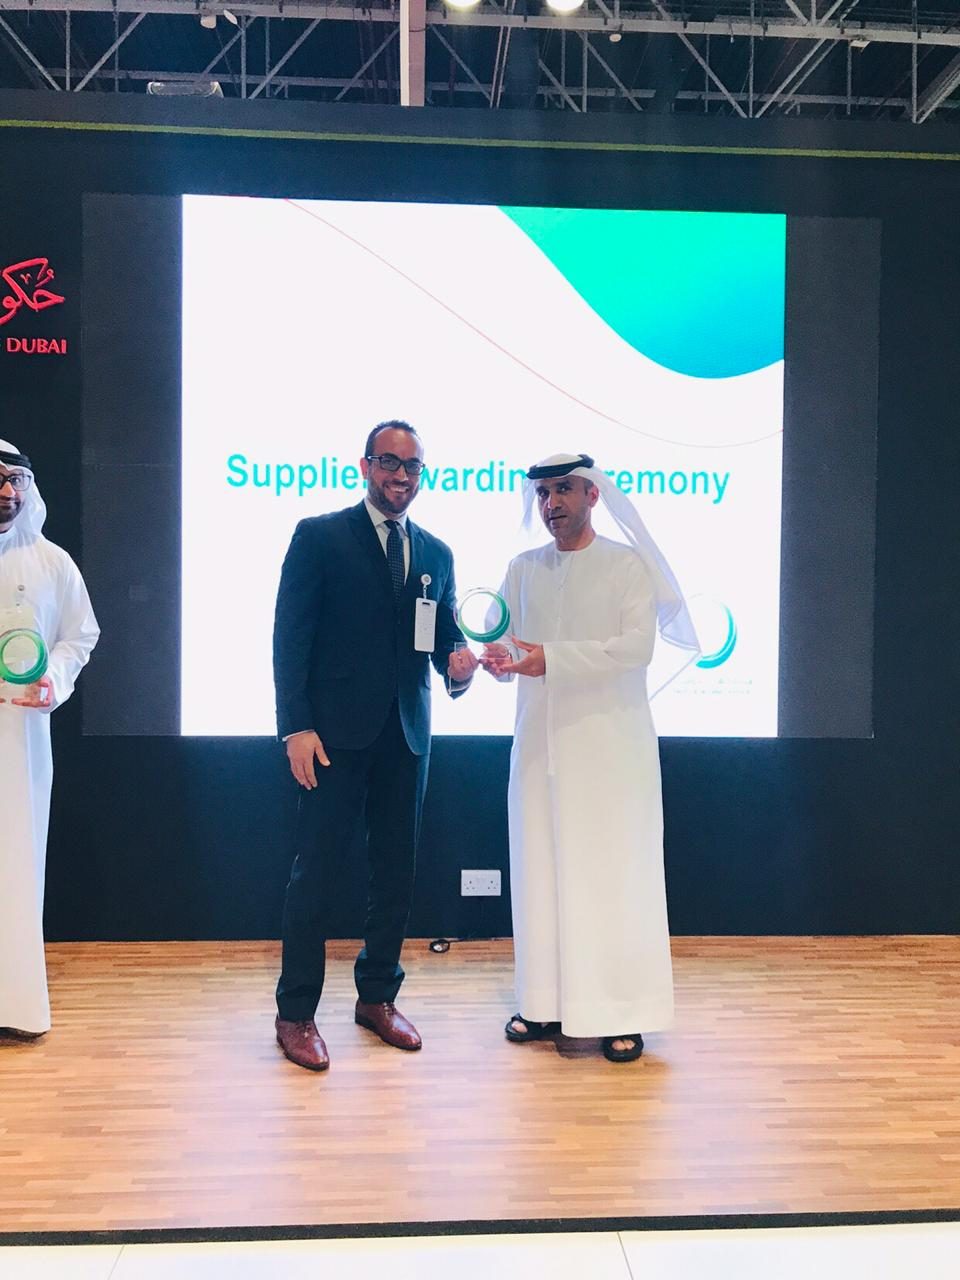 Dubai Electricity Water Authority Awards De Nora in Recognition Ceremony